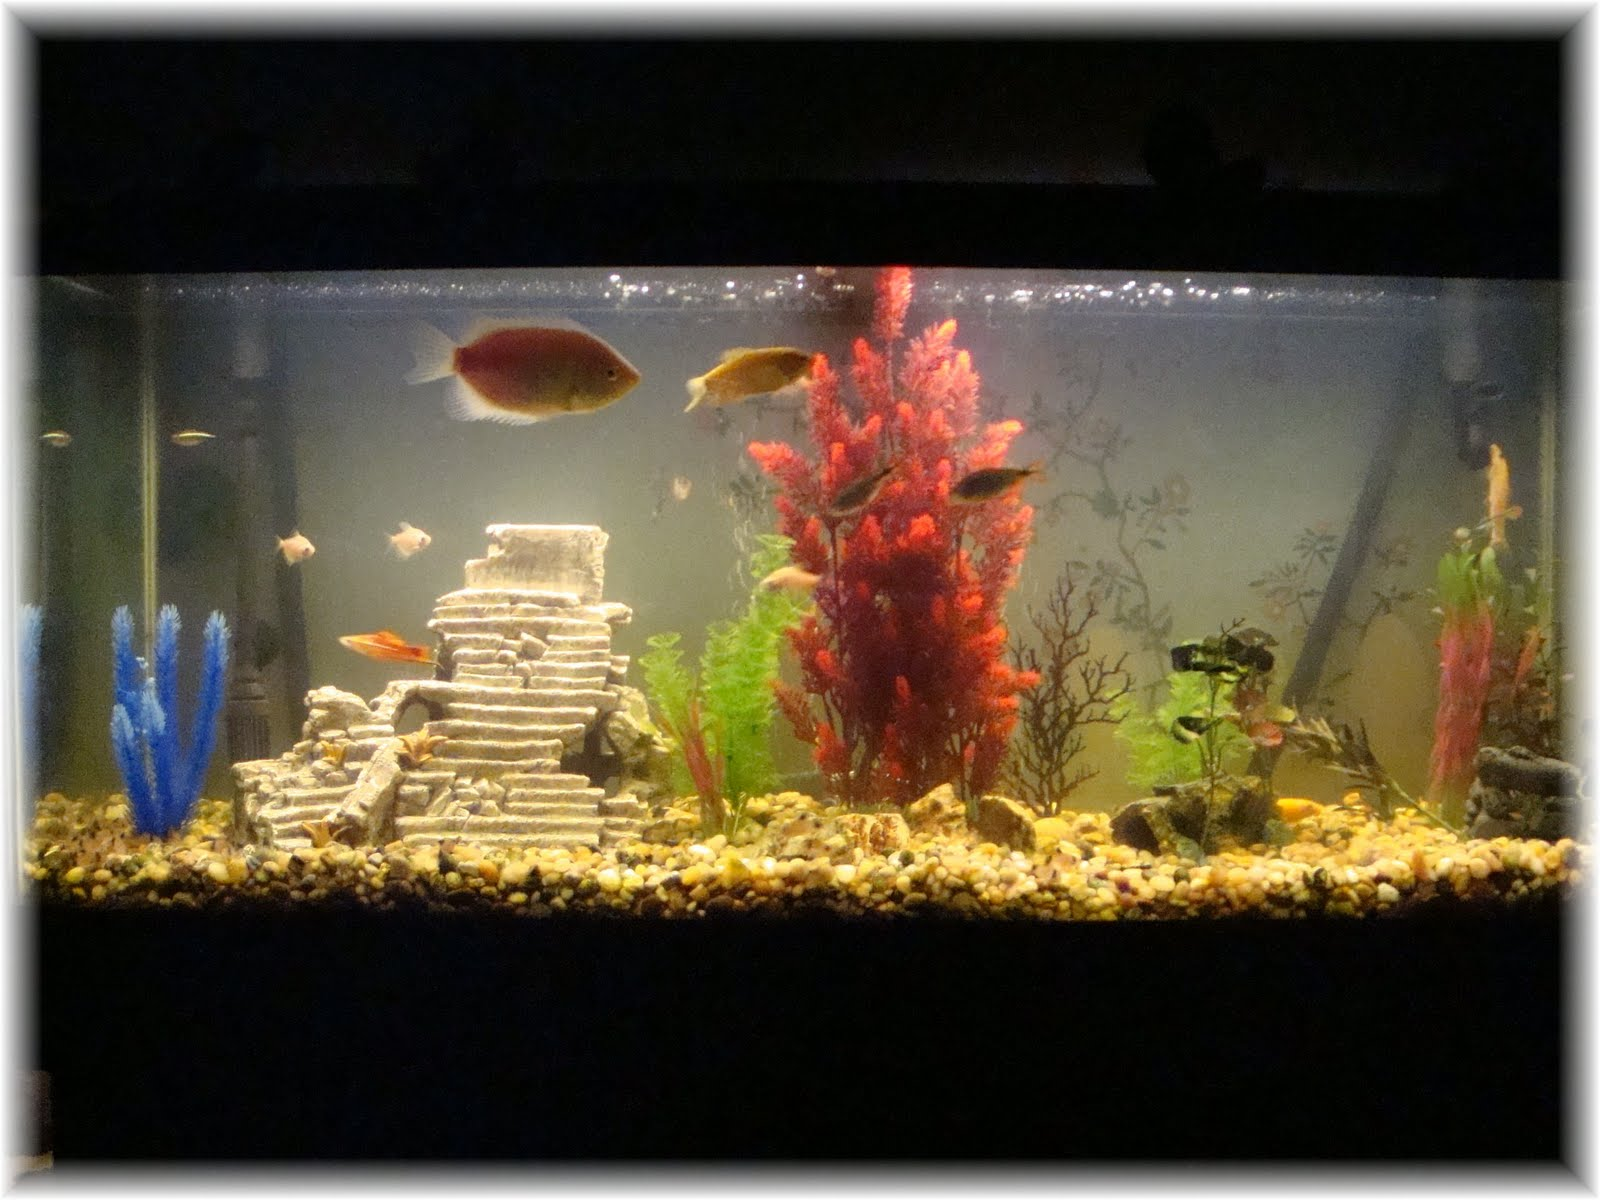 Small fish tank maintenance nj custom design aquarium nj for Google fish tank mrdoob